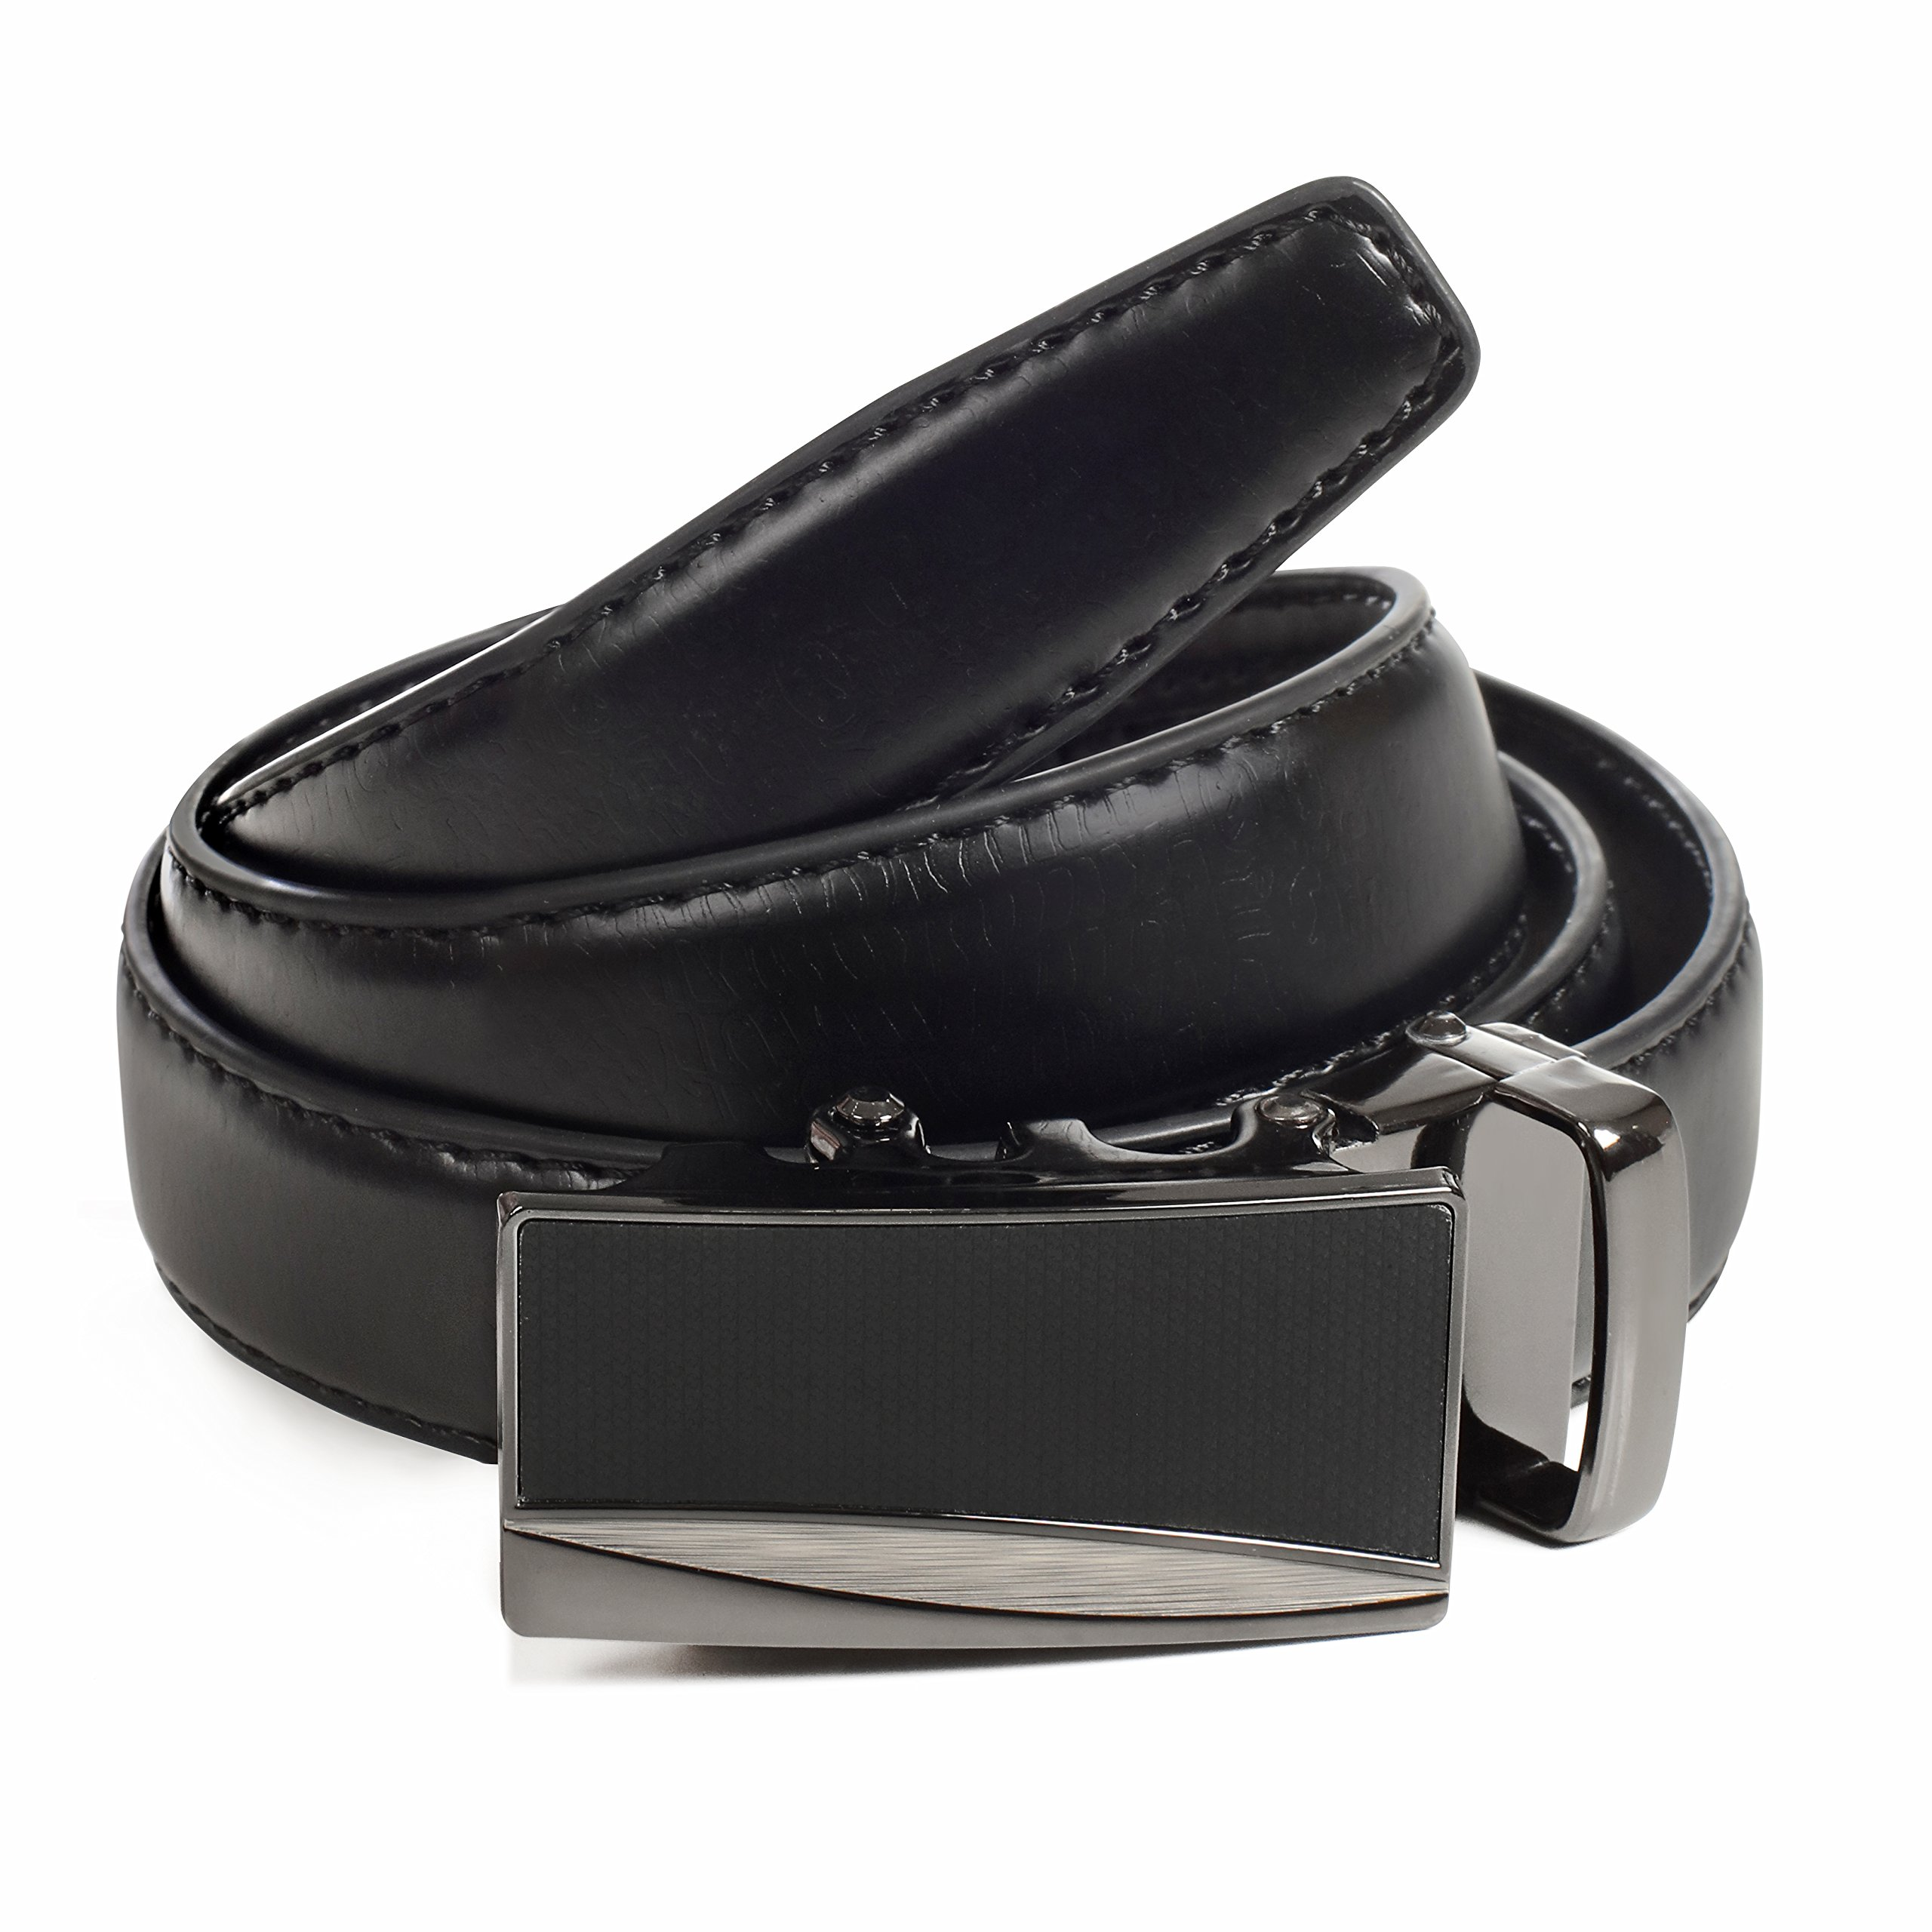 Womens Ratchet Belt, Leather, Automatic Buckle, Adjustable Belt With No Holes by CANDOR AND CLASS (Up to 44 Inch Waist, W722 Black)